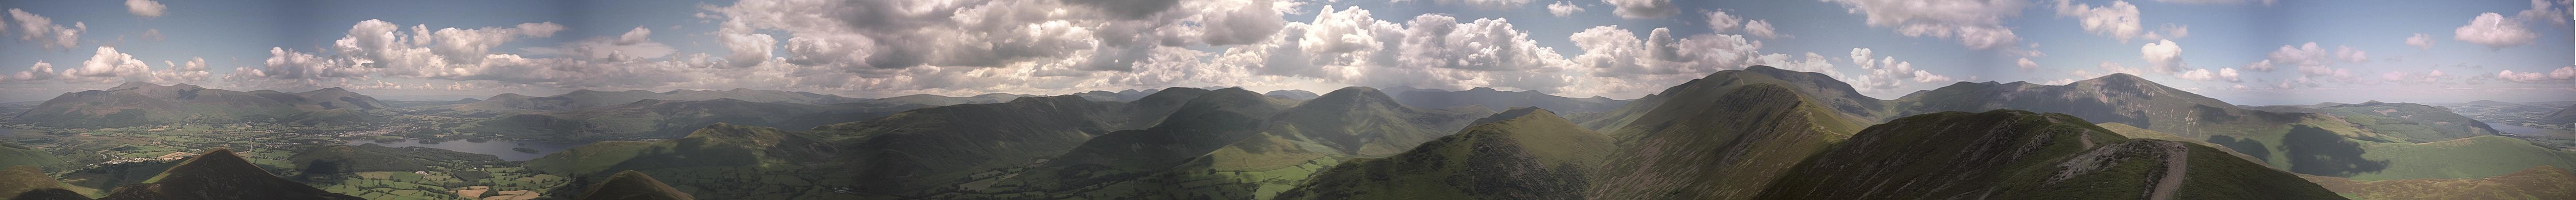 Causey Pike - Complete Panorama